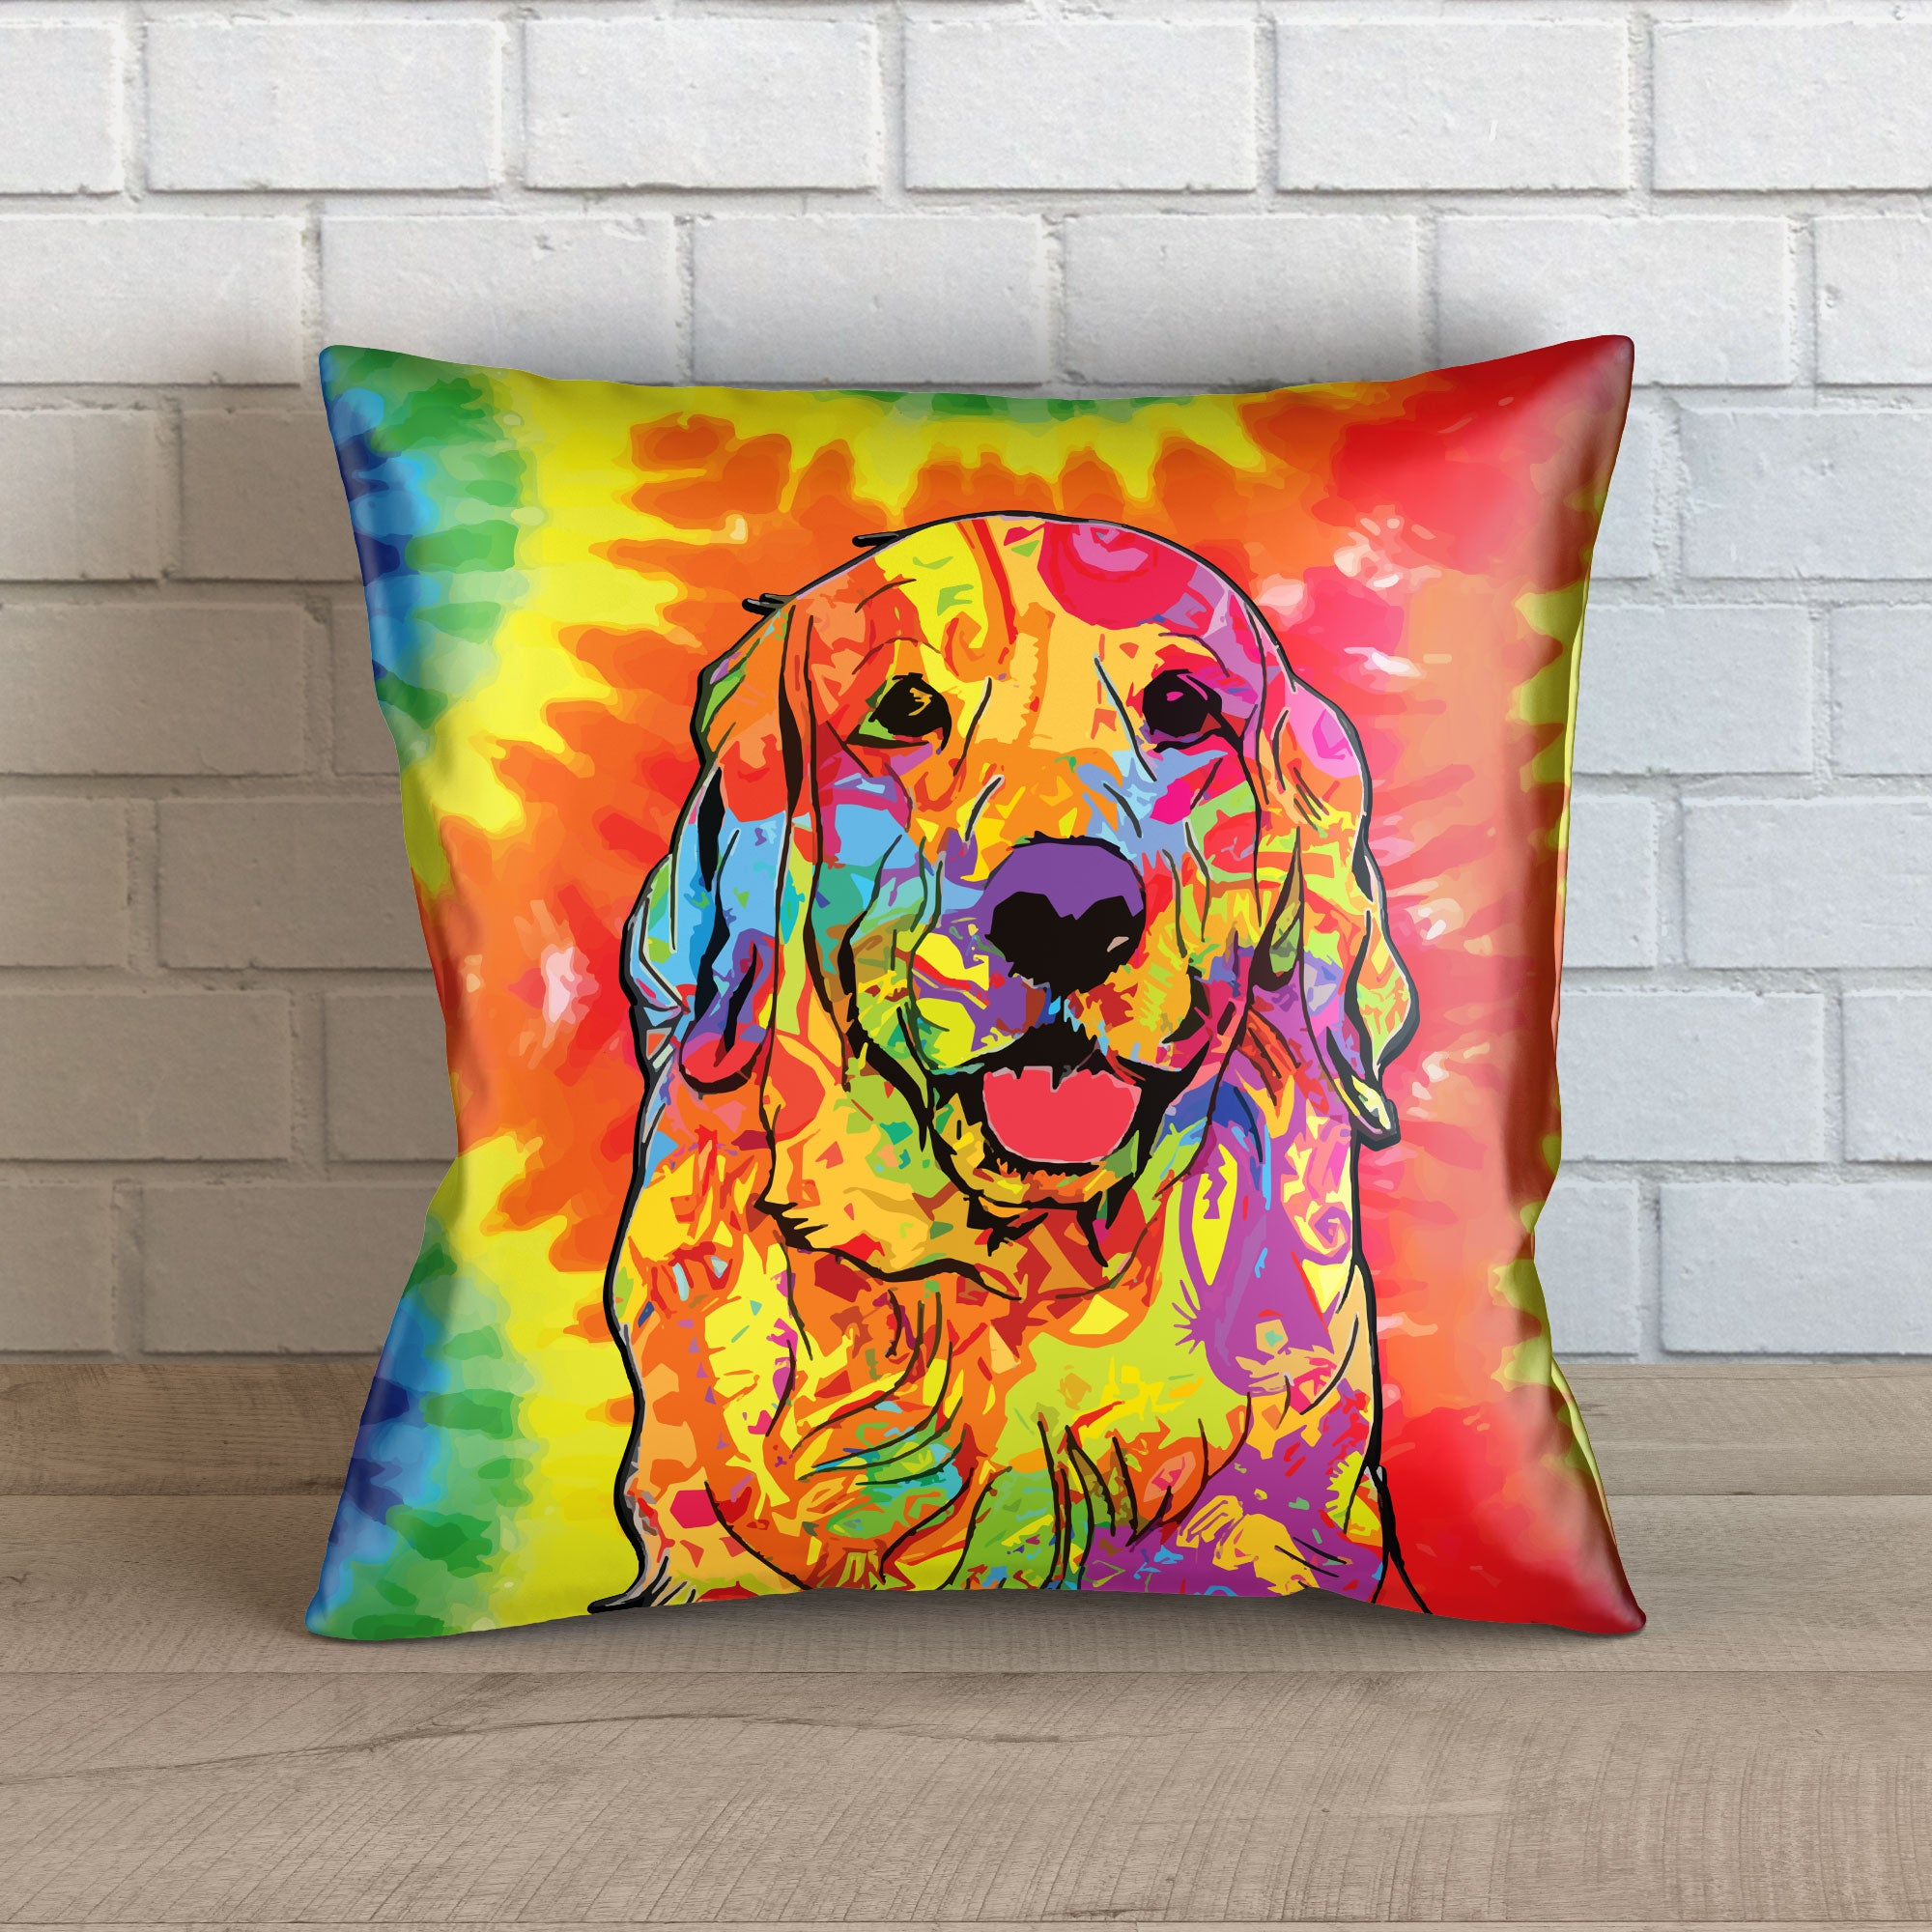 "Colorful Golden Retriever Throw Pillow Cover - 18"" x 18"""